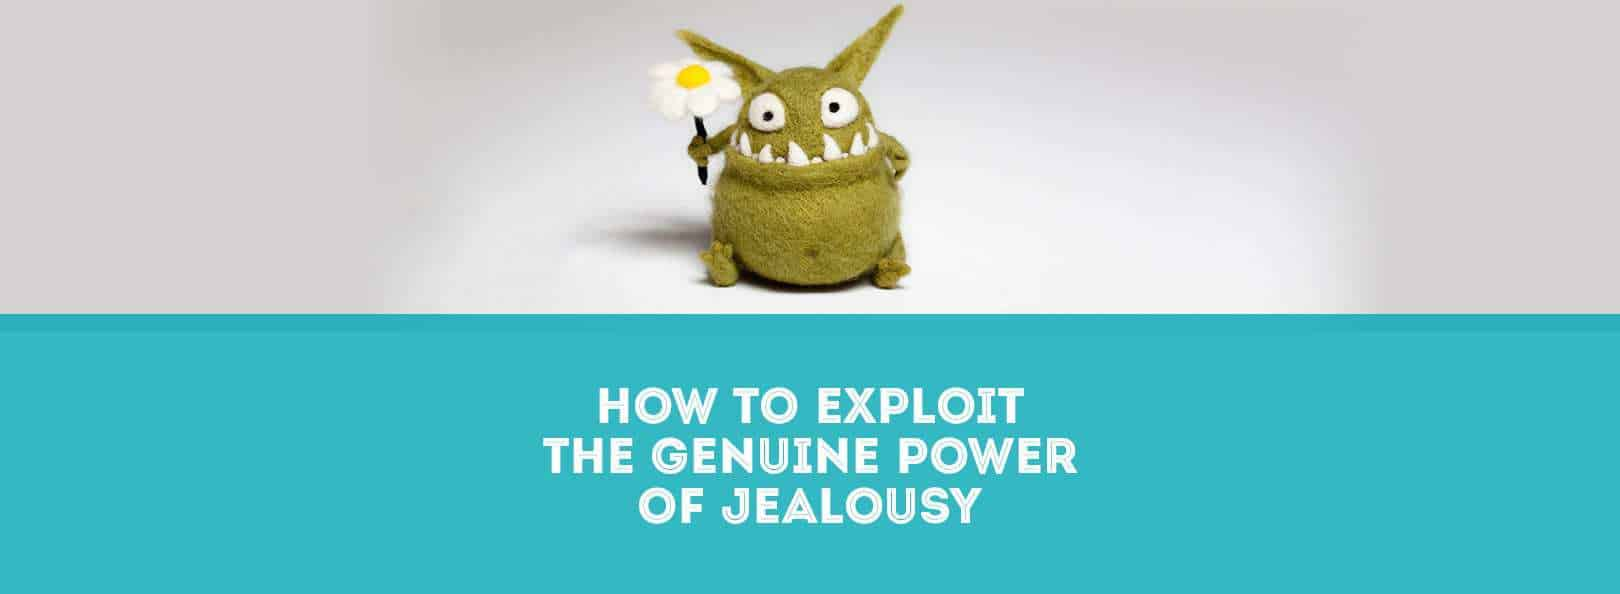 How to Exploit the Genuine Power of Jealousy